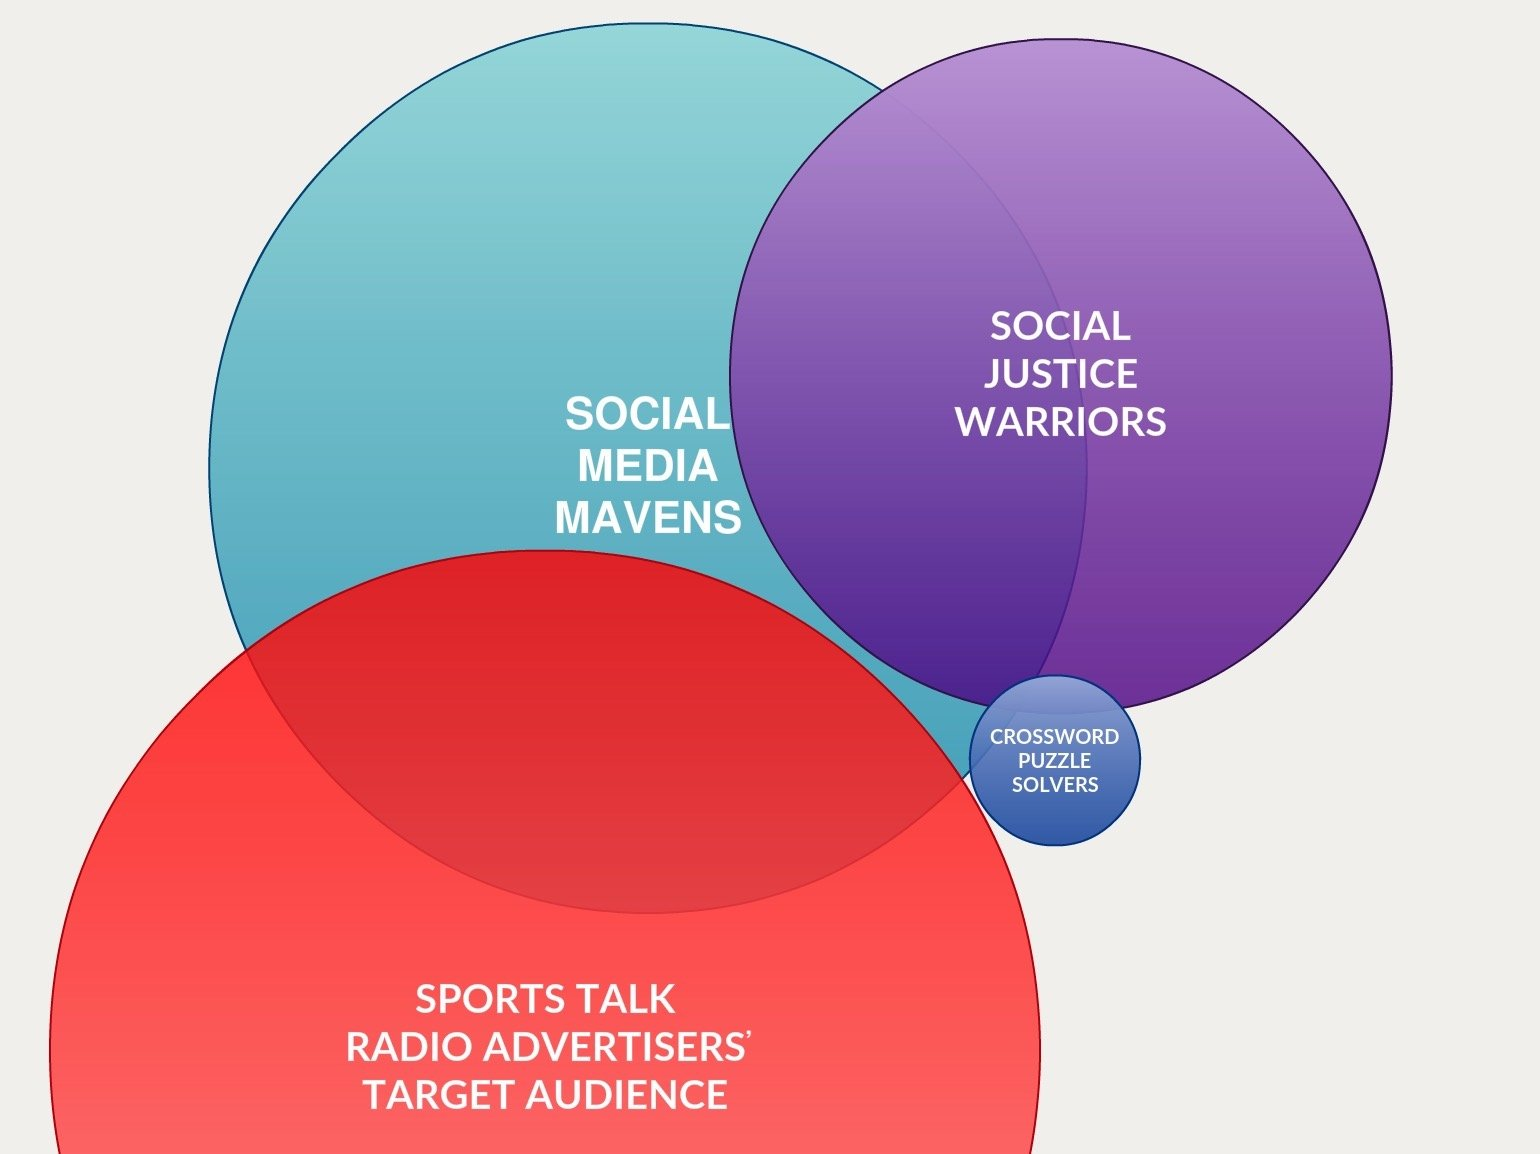 Venn diagram depicting the teensy intersection where Social Media Mavens, Social Justice Warriors, and Crossword Puzzle Solvers intersect